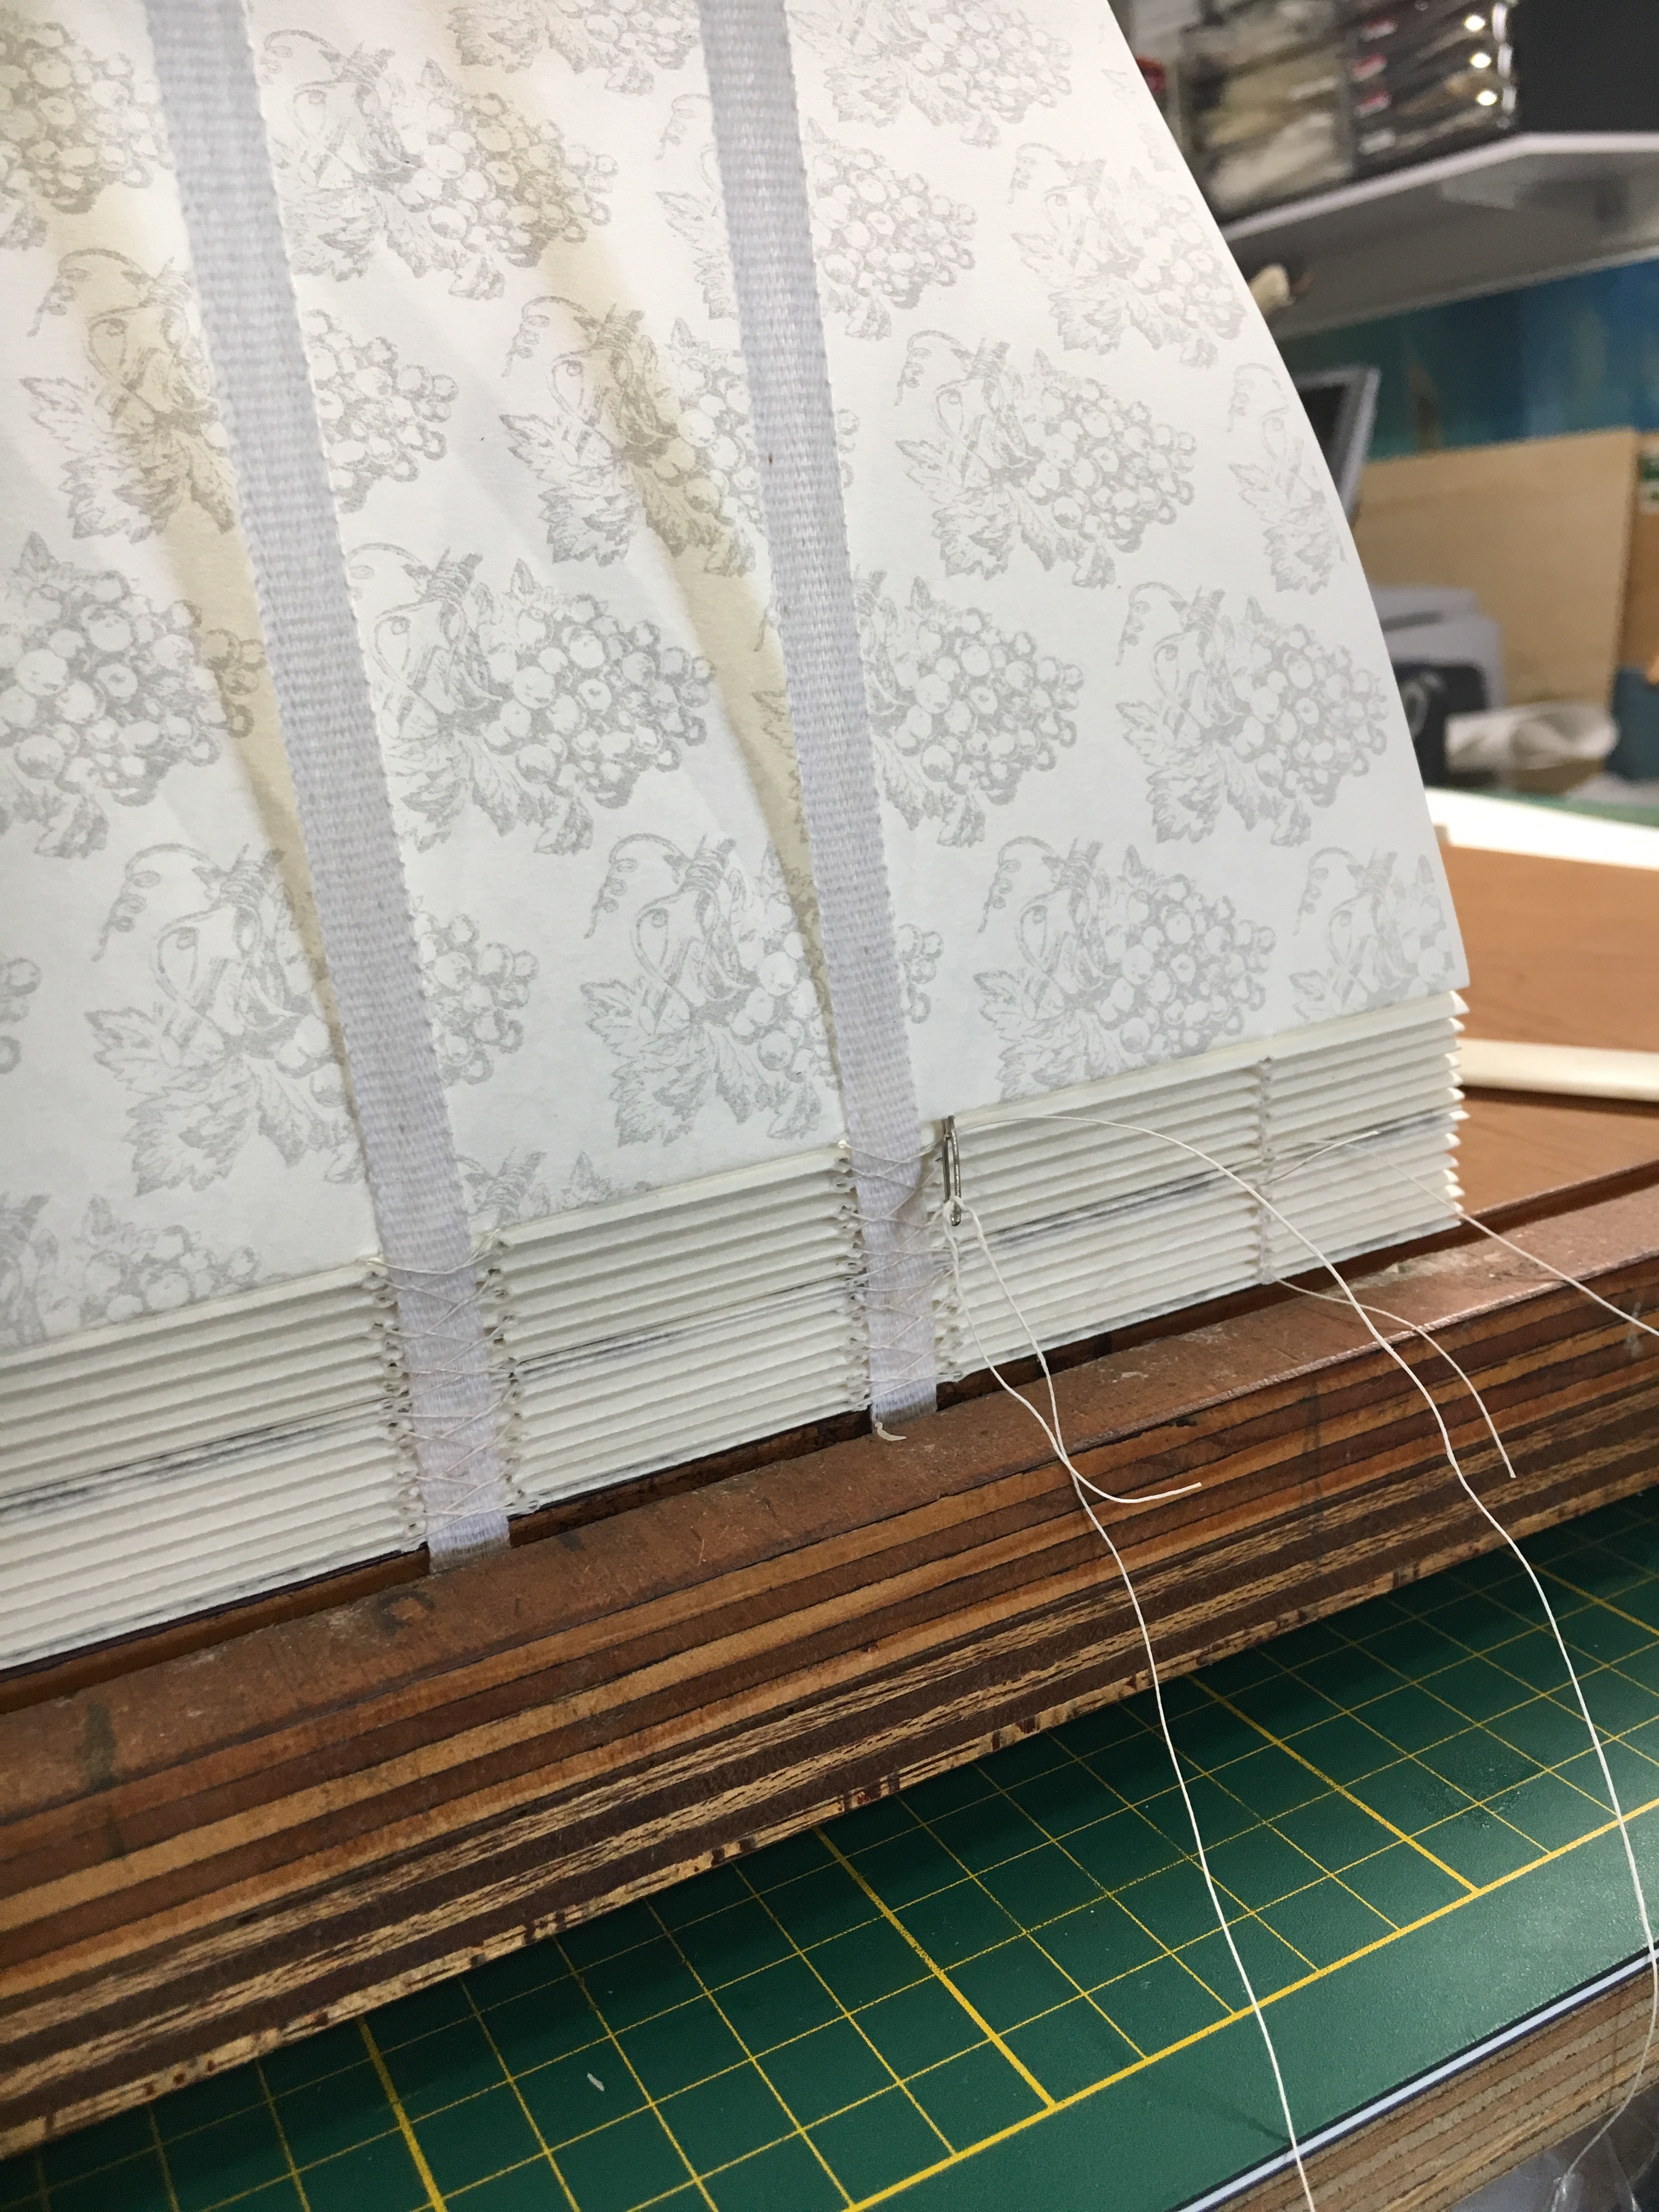 Sewing of Wine Notes